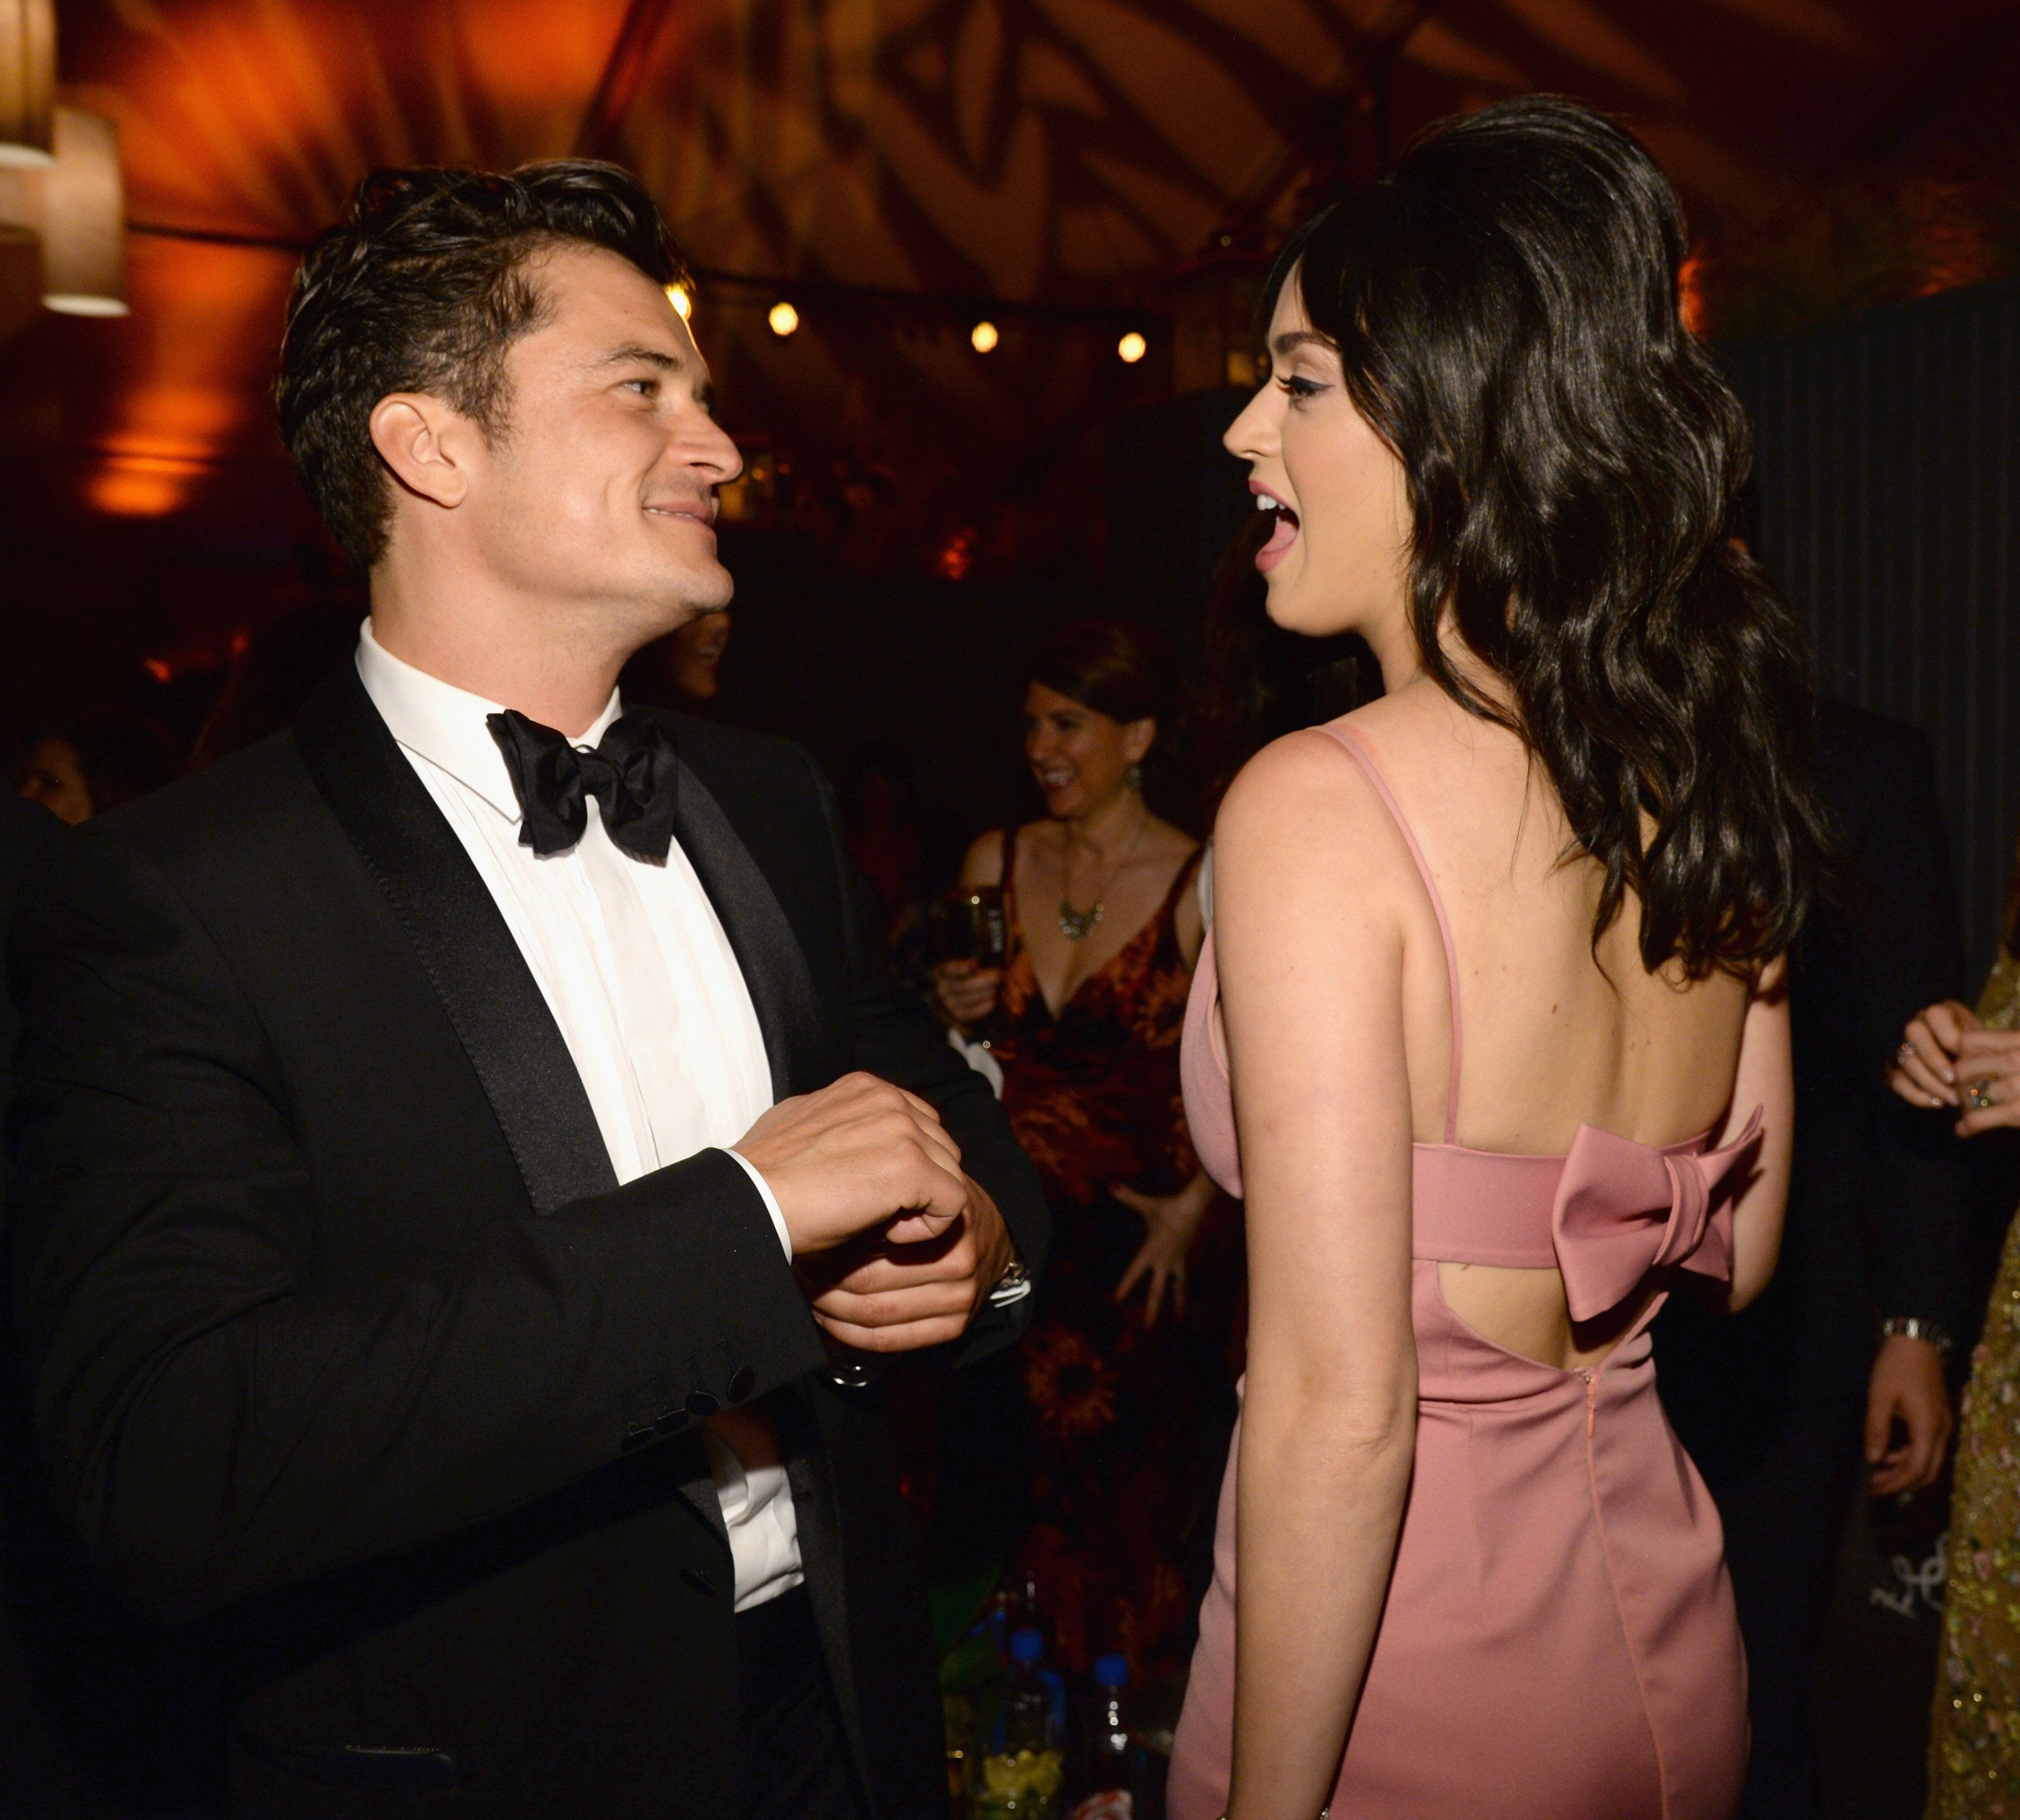 Orlando Bloom and Katy Perry first sparked rumours they were together after this photo at last year's...